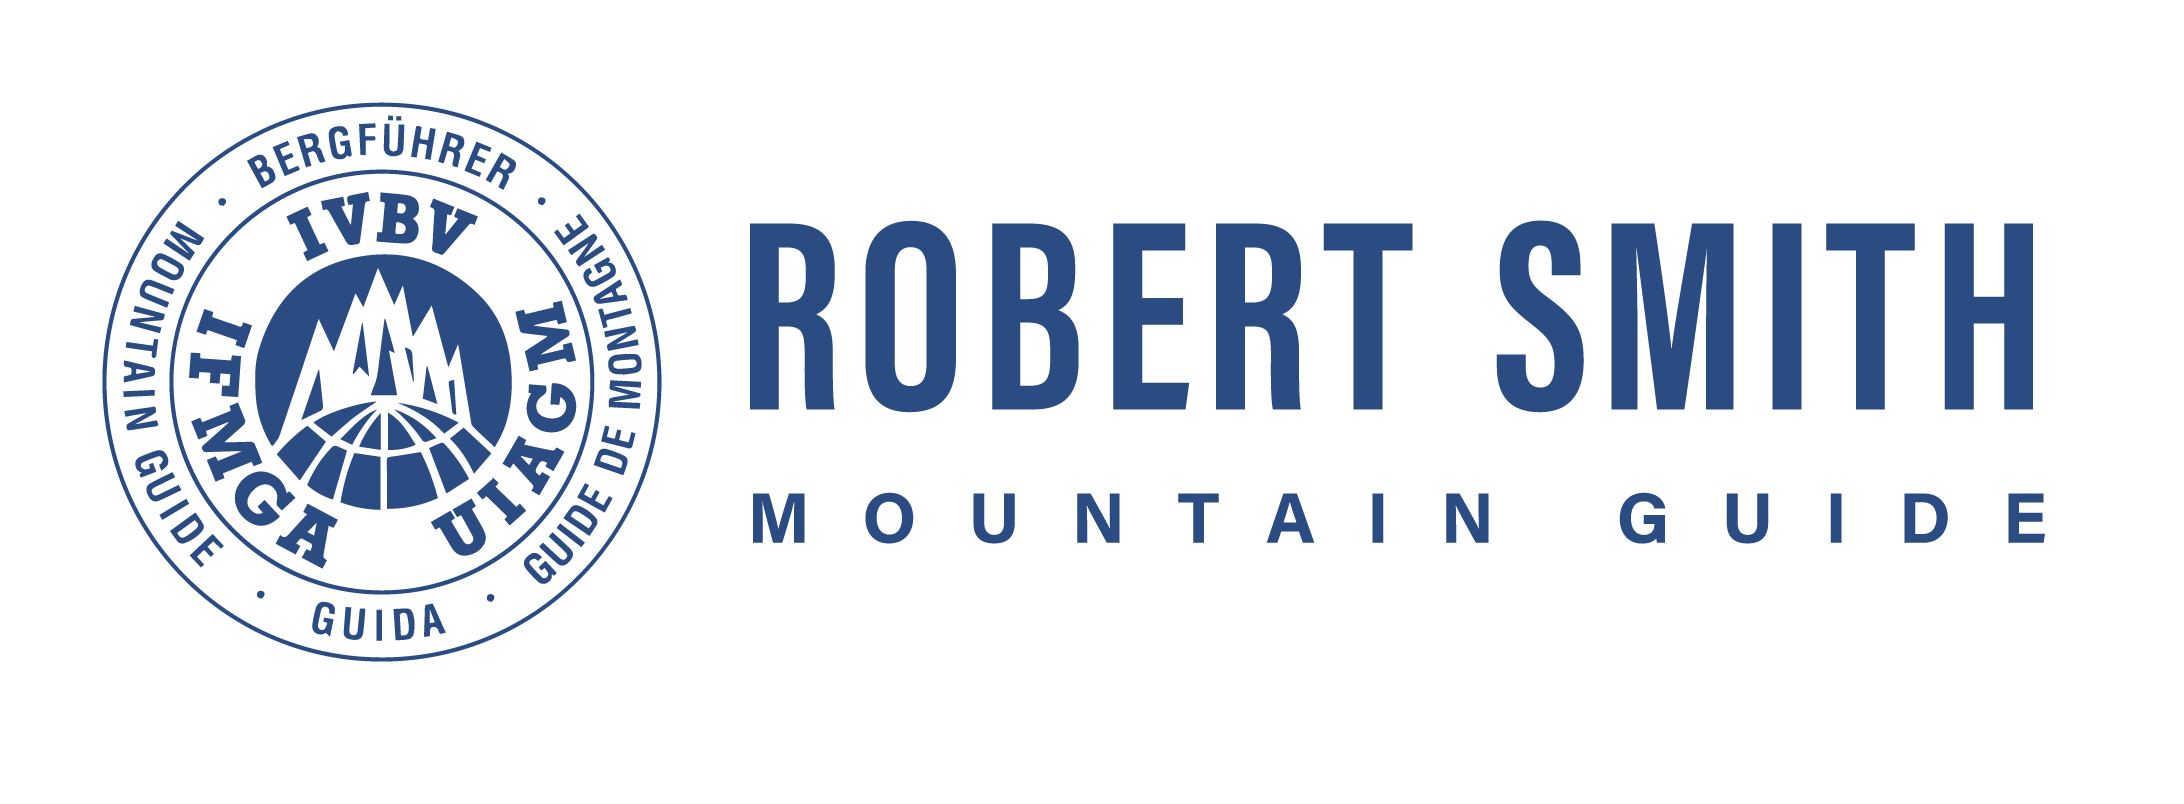 Robert Smith Mountain Guide logo